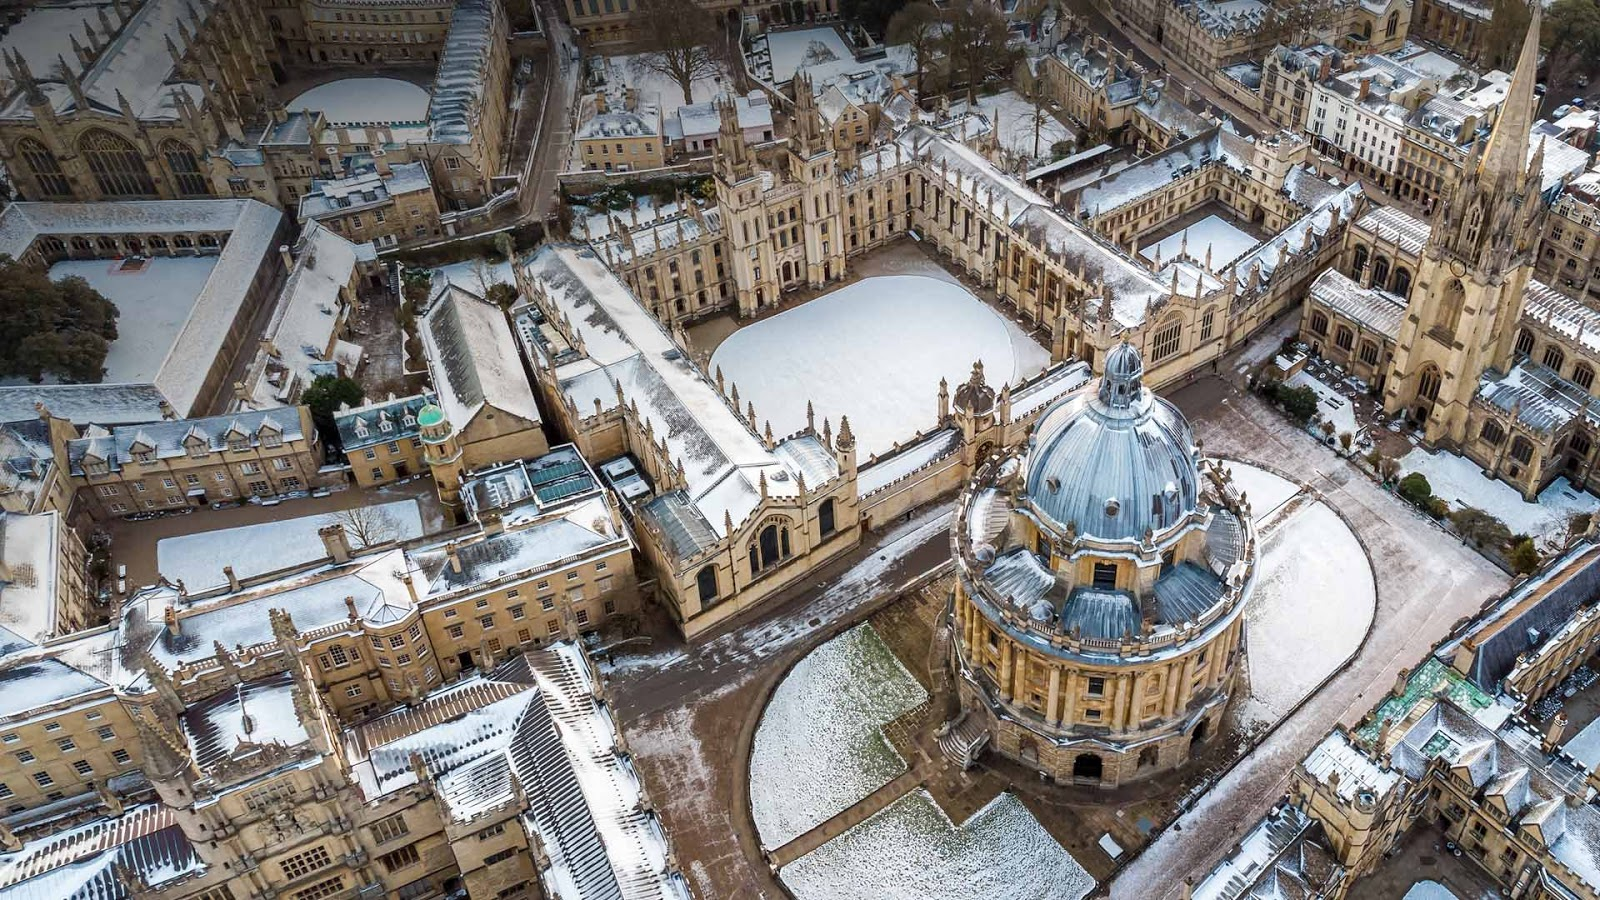 Aerial view of central Oxford, England © Alexey Fedorenko/Shutterstock